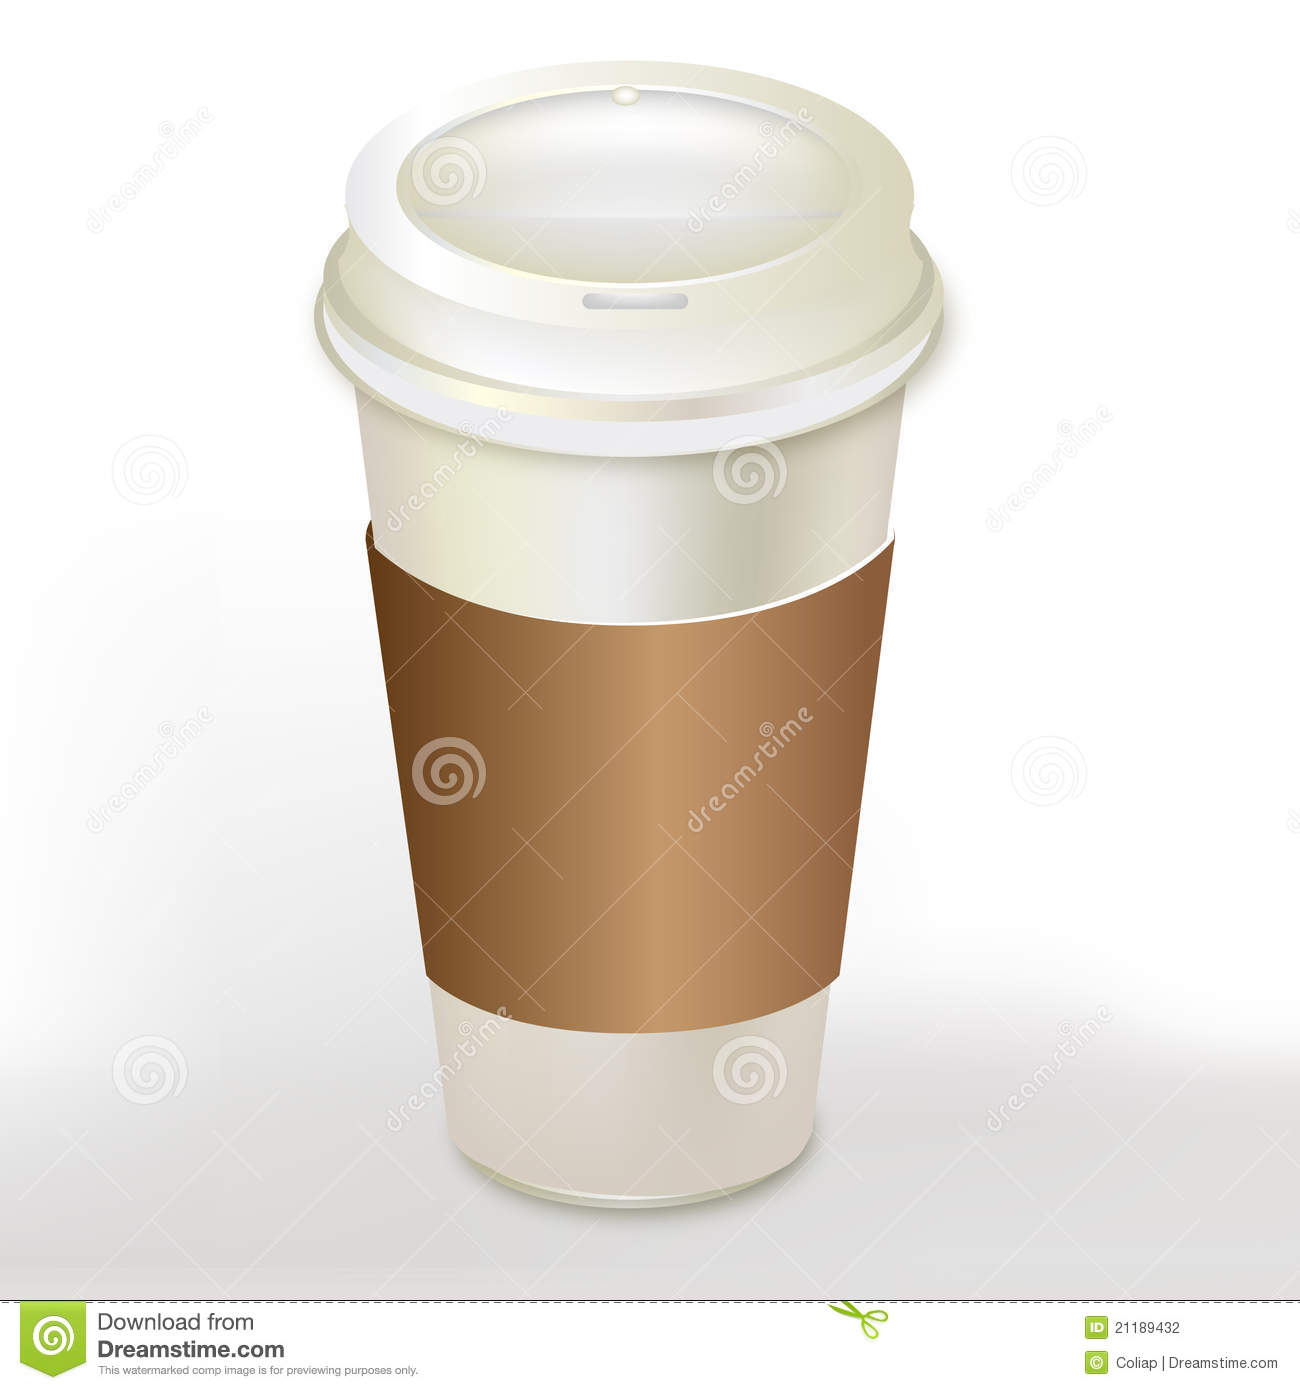 Coffee container with cap